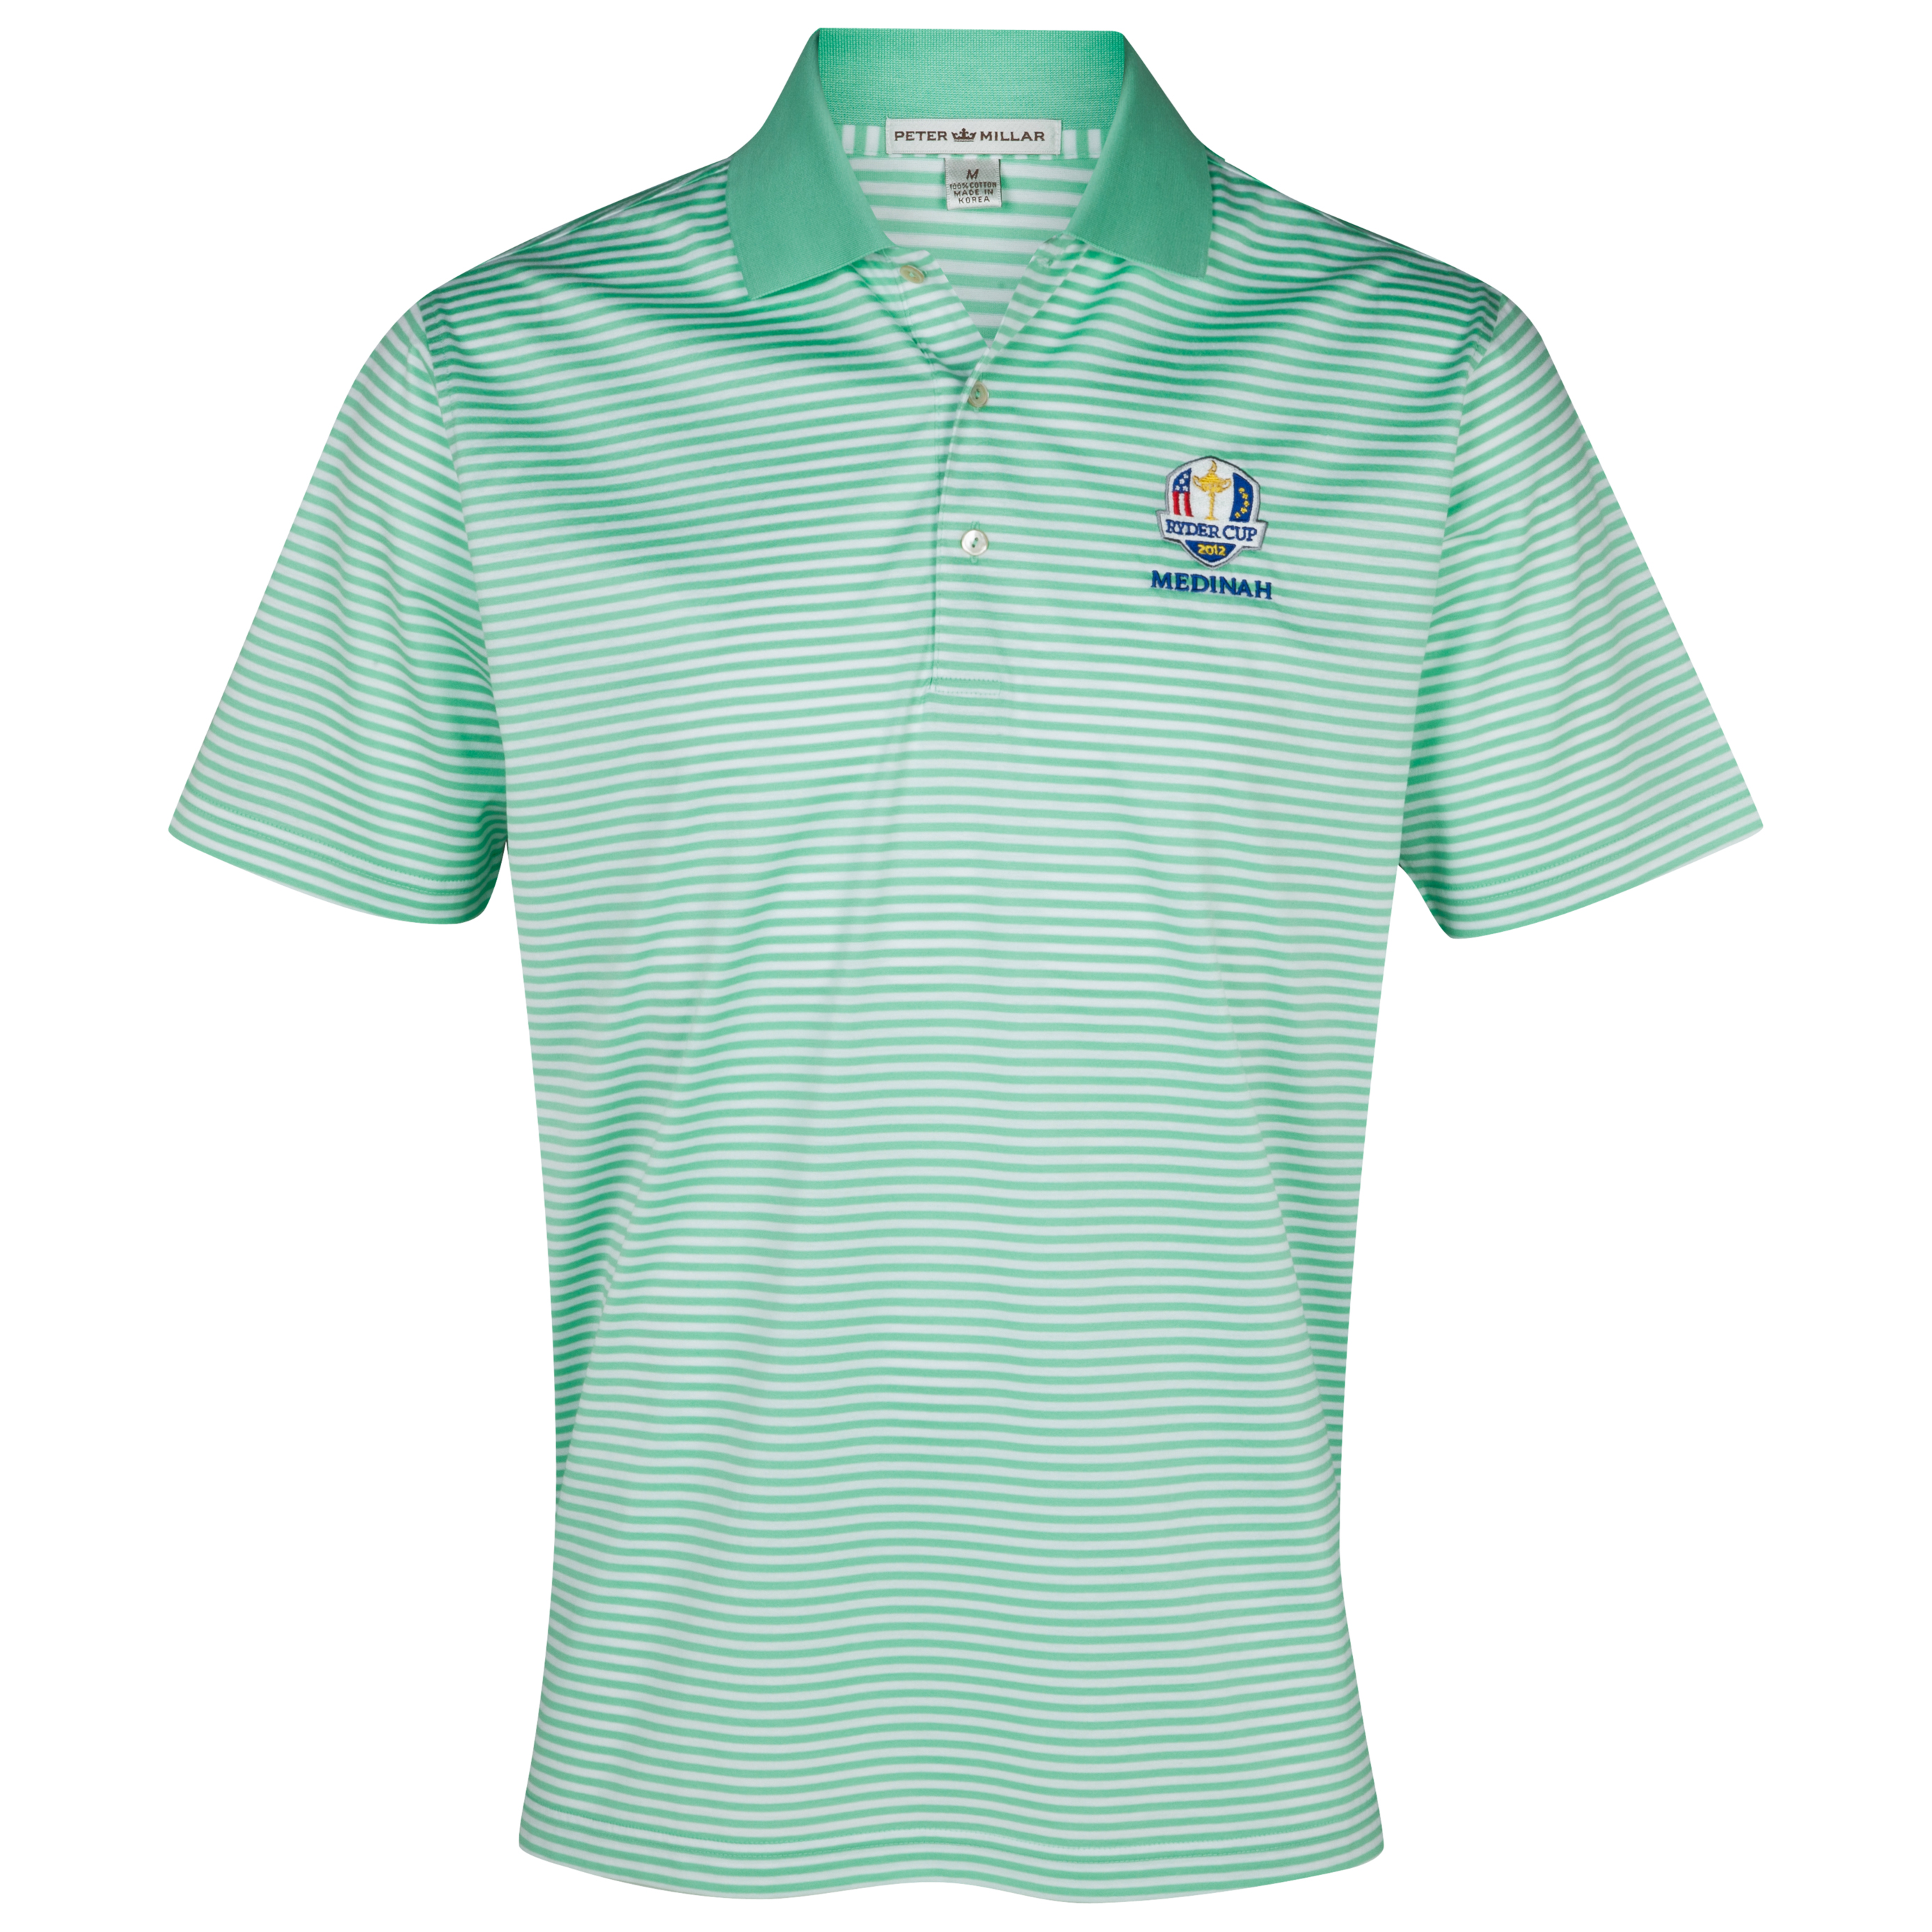 The Ryder Cup Medinah 2012 Peter Millar Luxury Stripe Polo - Spearmint/White